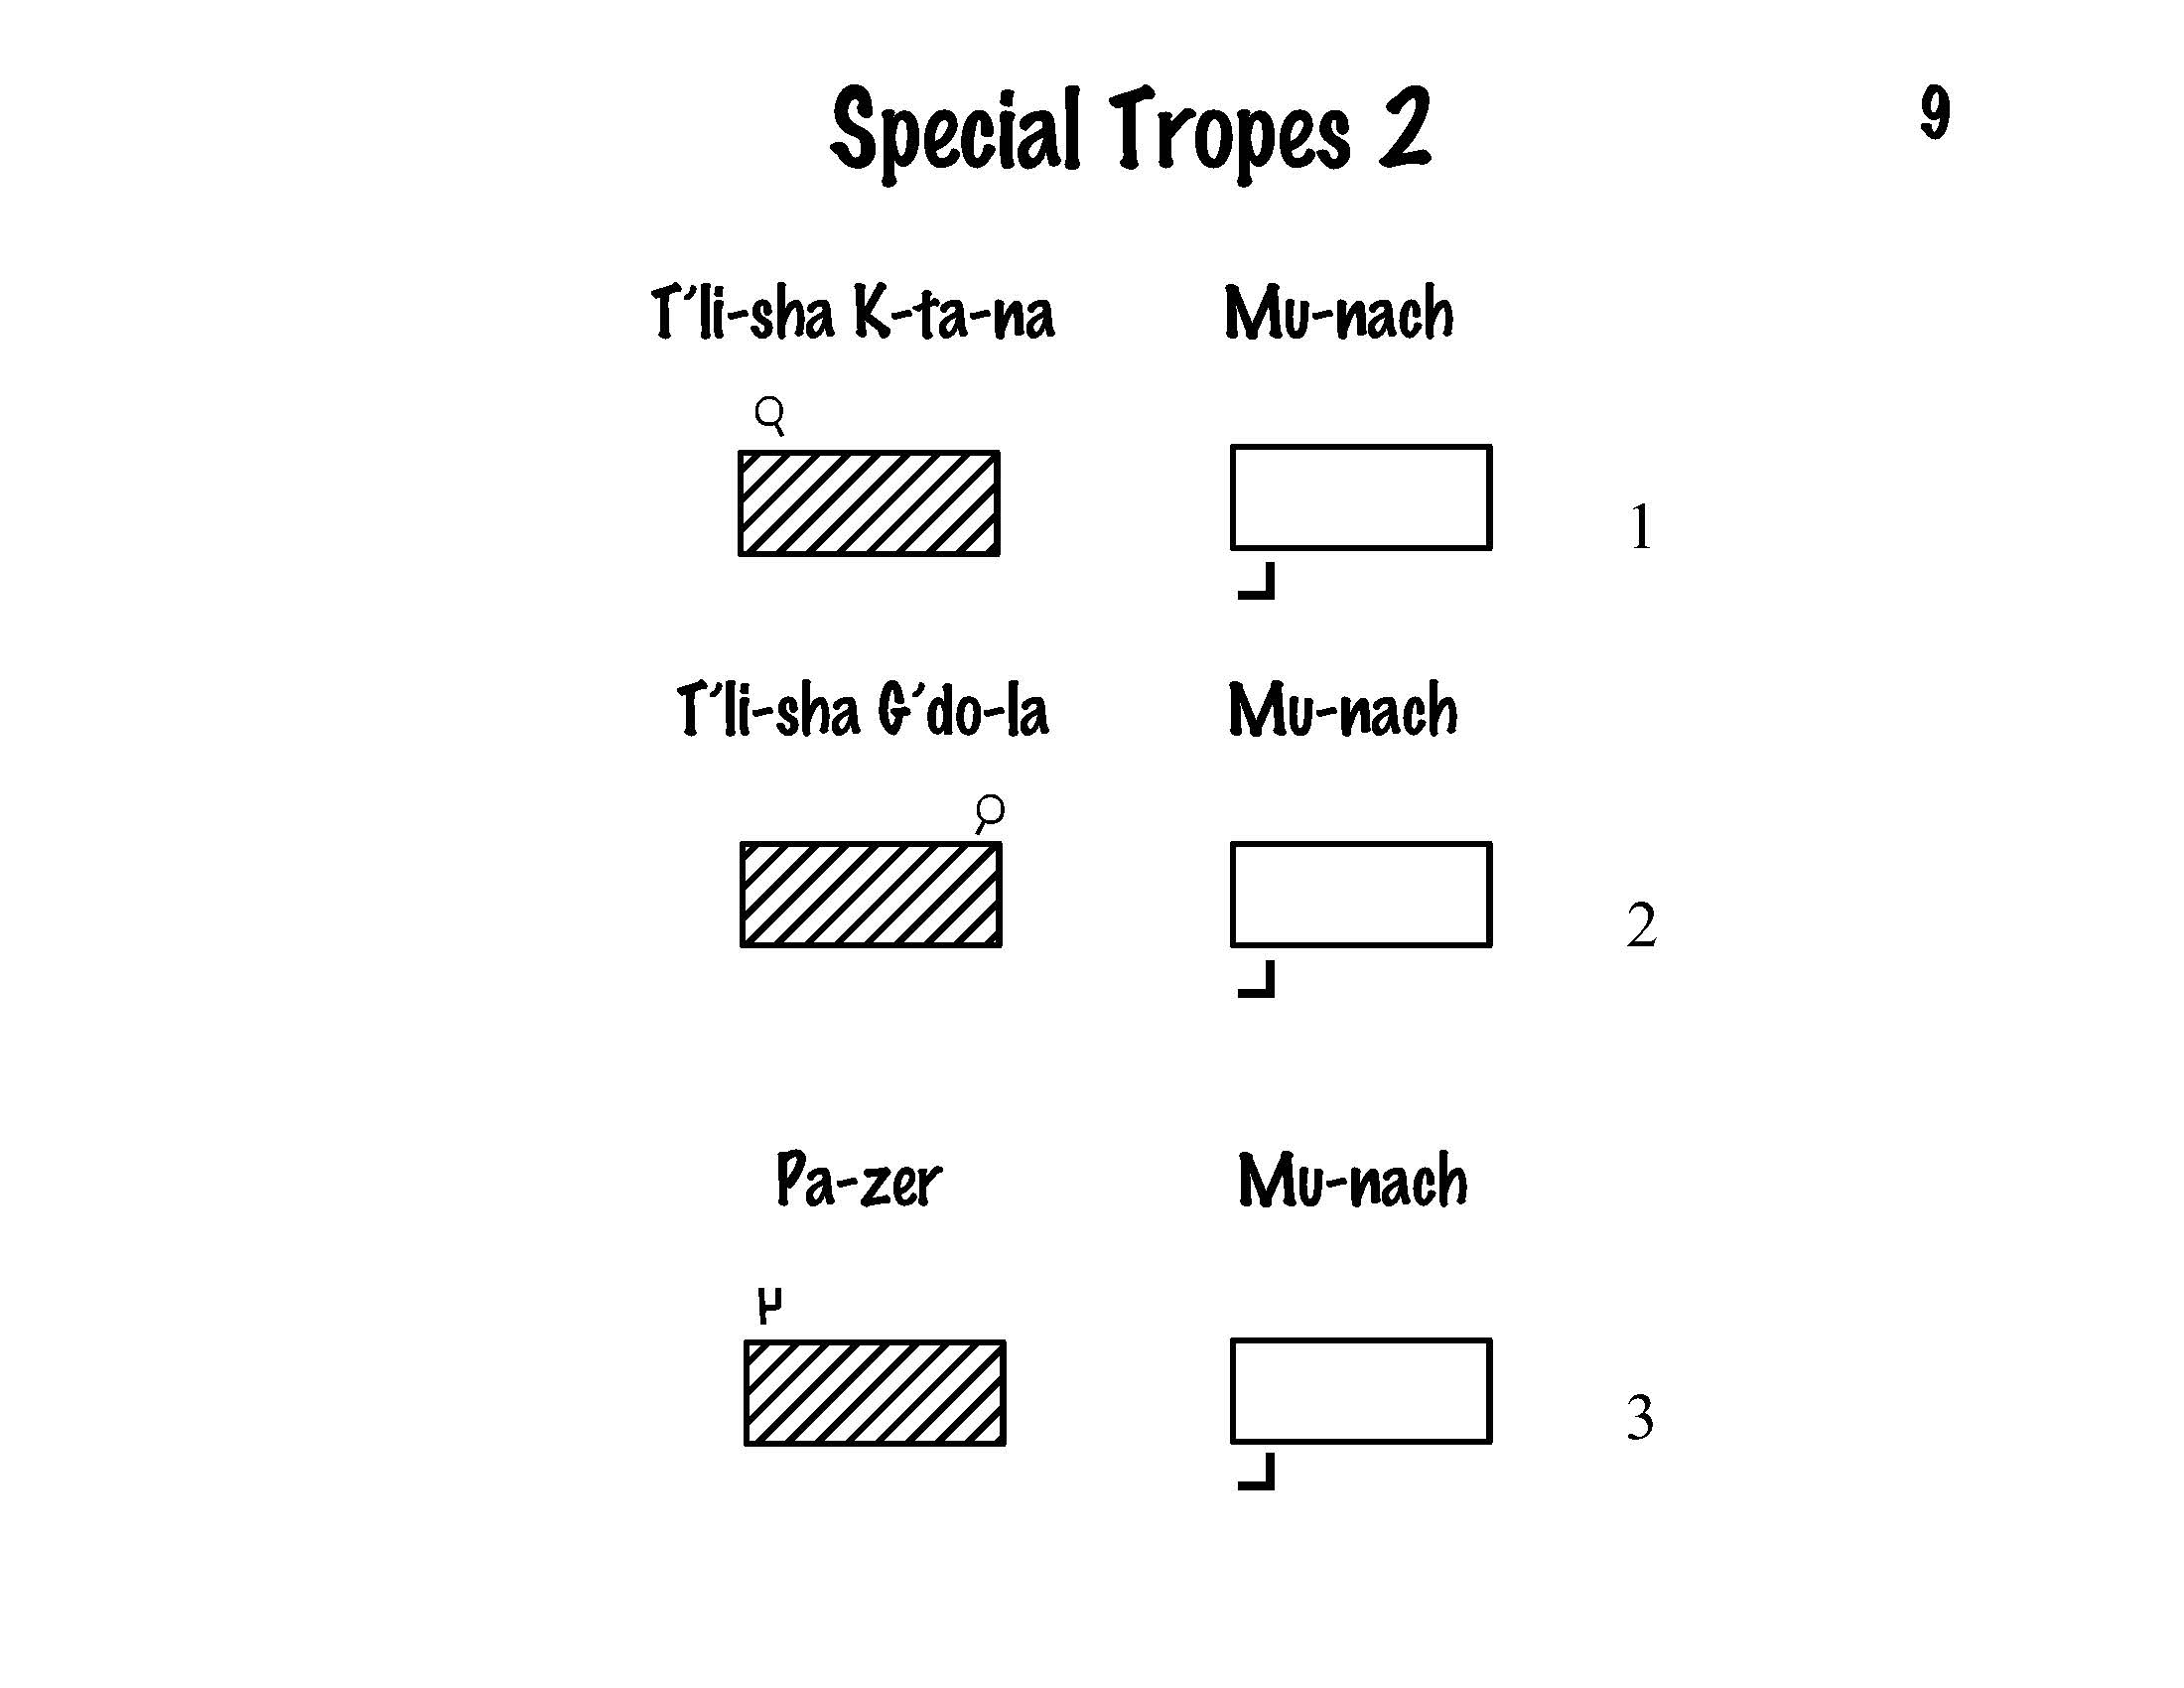 Special Tropes 2